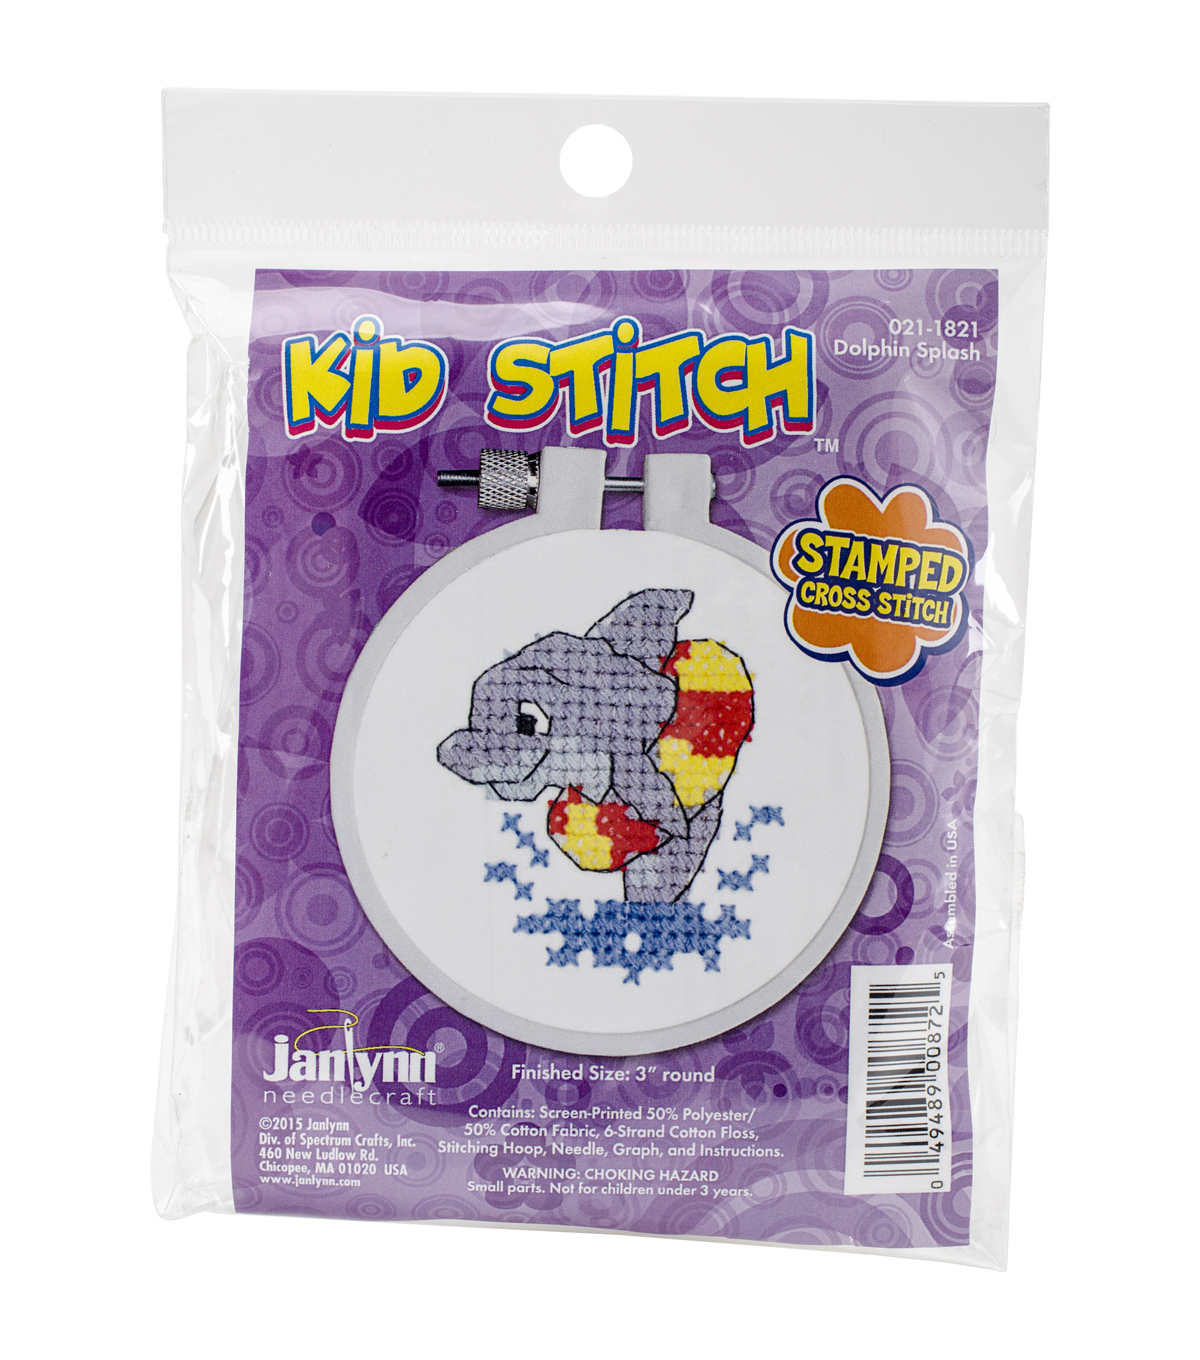 Janlynn Kid Stitch Stamped Cross Stitch Kit-Dolphin Splash